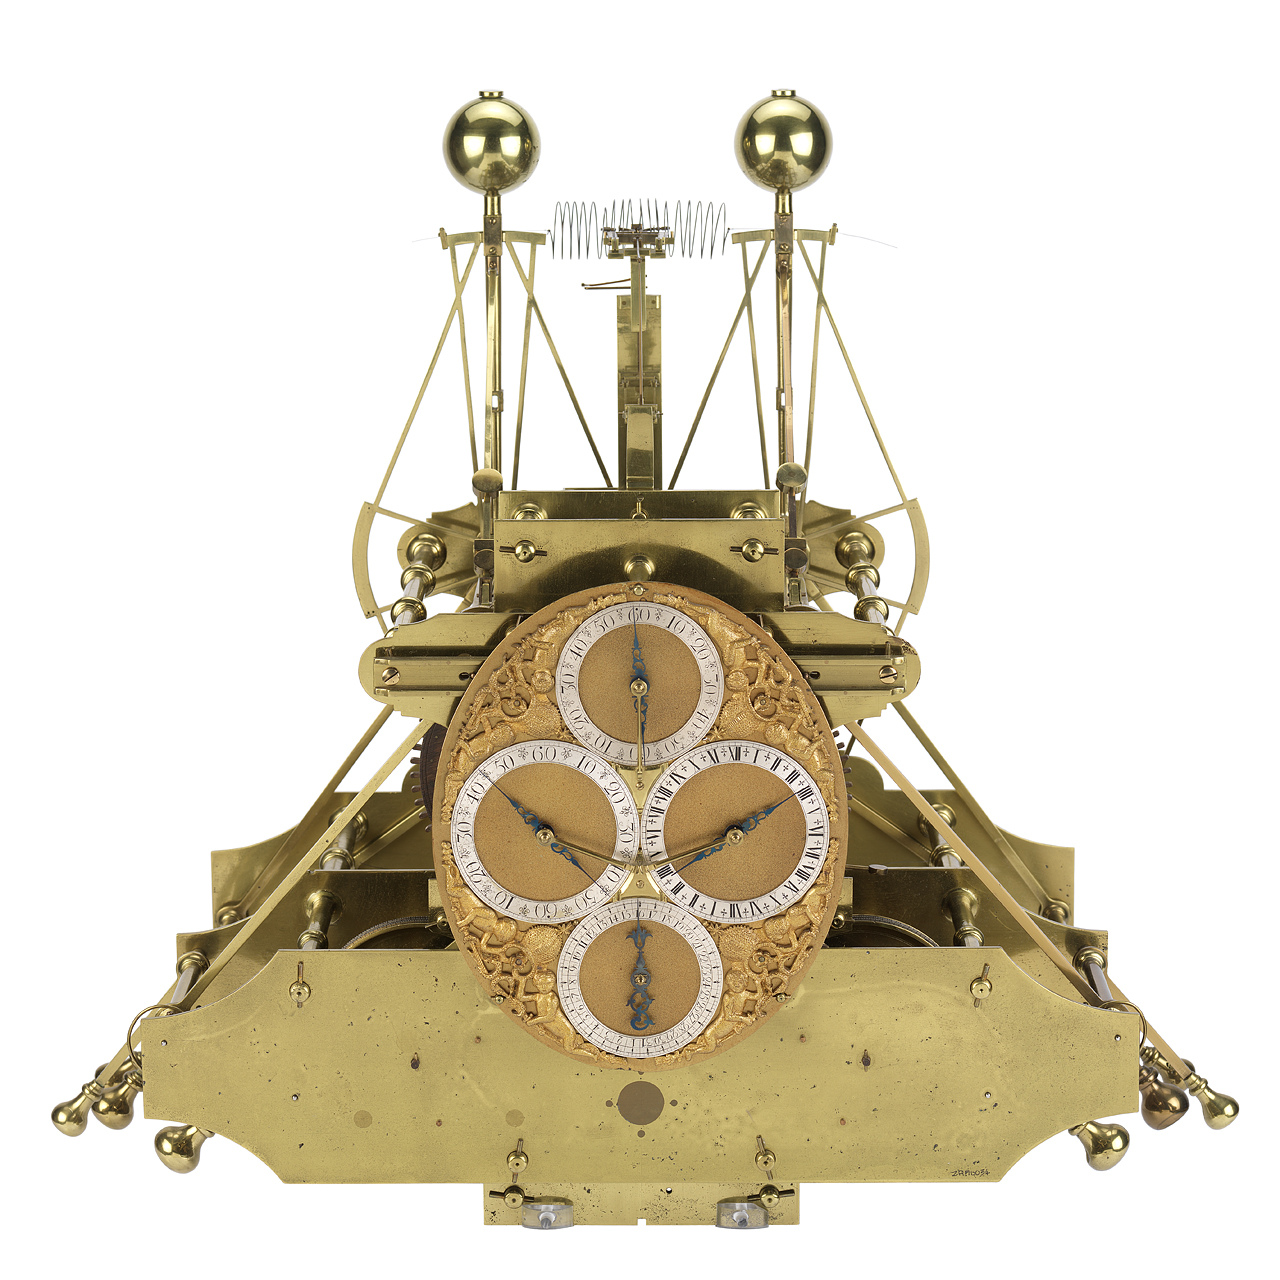 H1 was built between 1730 - 1735 by John Harrison and is essentially, a portable version of Harrison's precision wooden clocks. It is spring-driven and only runs for one day (the wooden clocks run for eight days). All of the moving parts are counterbalanced and controlled by springs so that, unlike a pendulum clock, H1 is independent of the direction of gravity. The linked balance mechanism also ensures that any change in motion which affects one of the balances is compensated for by the same effect on the other balance.